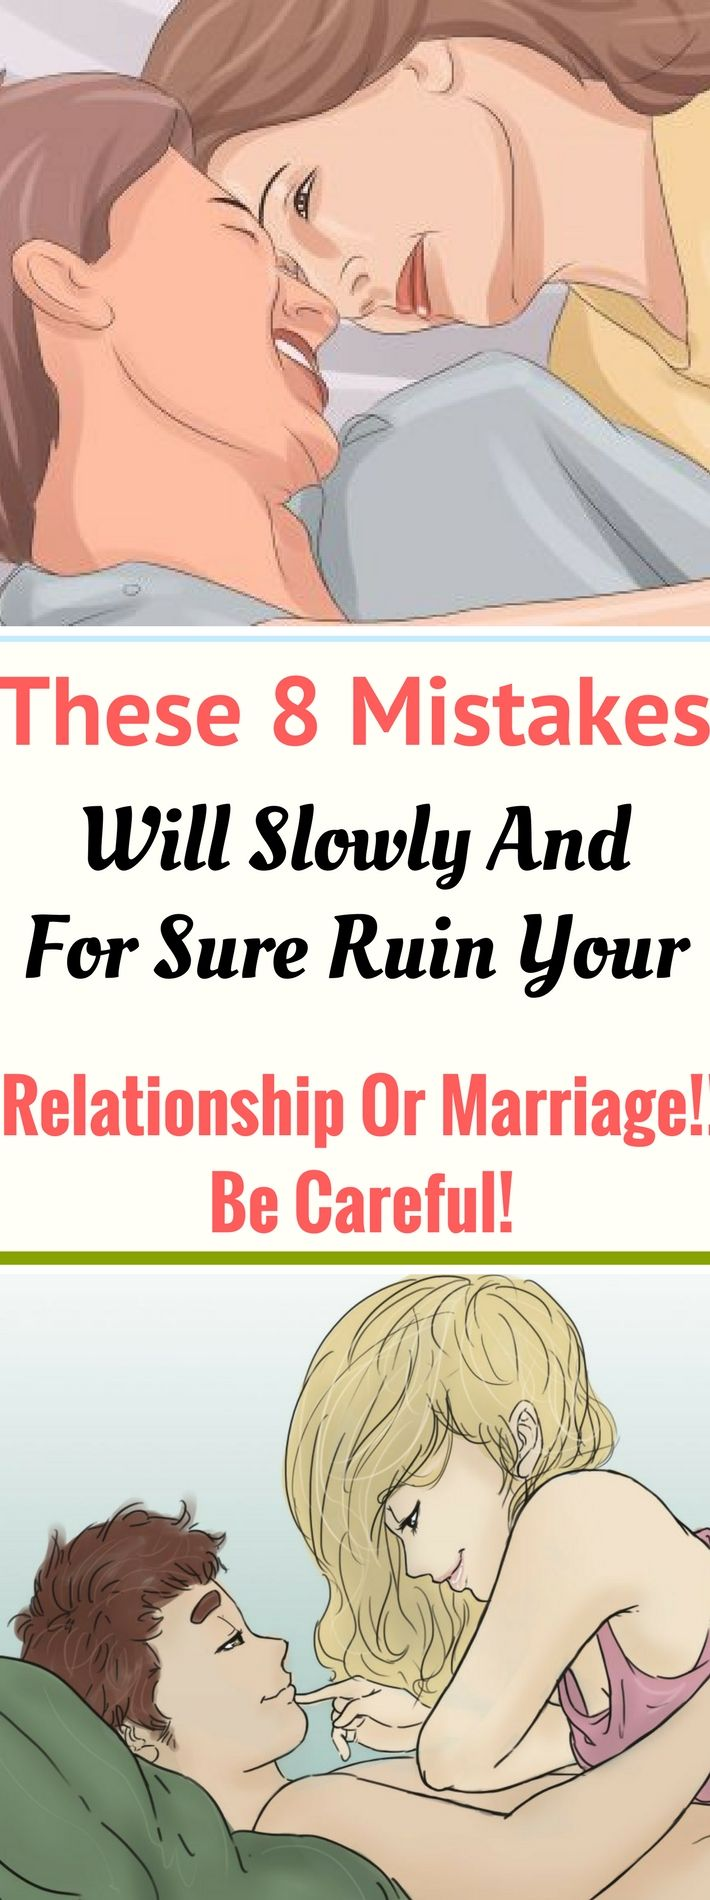 These 8 Mistakes Will Slowly And For Sure Ruin Your Relationship Or Marriage!! Be Careful! Need to know..! Need to know! !!!